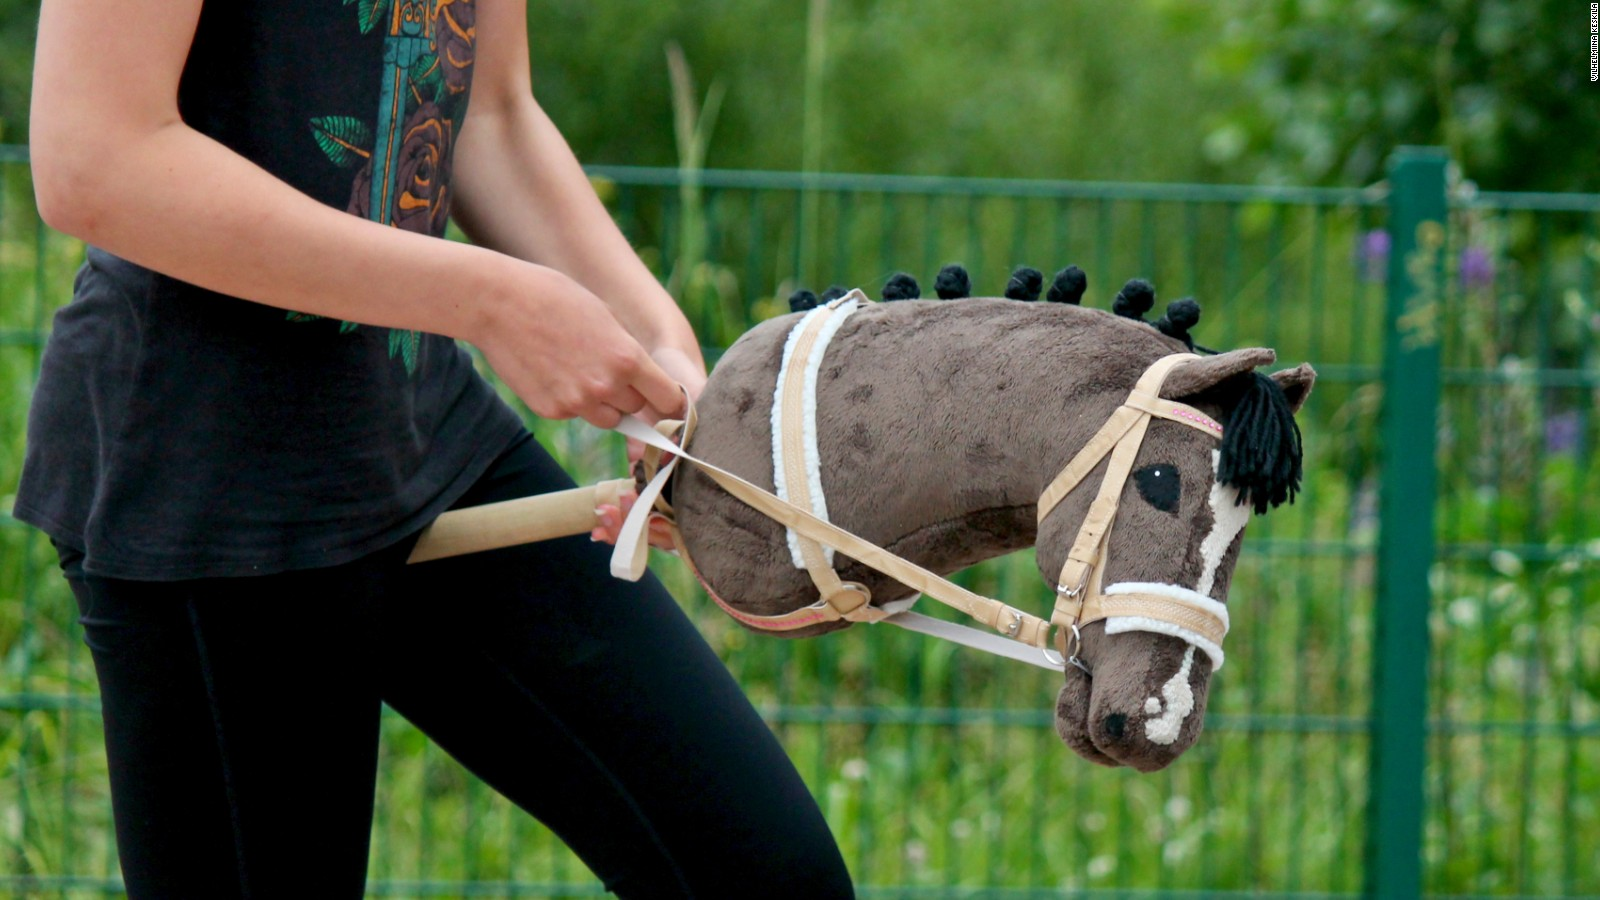 Finland - the home of the Hobby Horse Championship